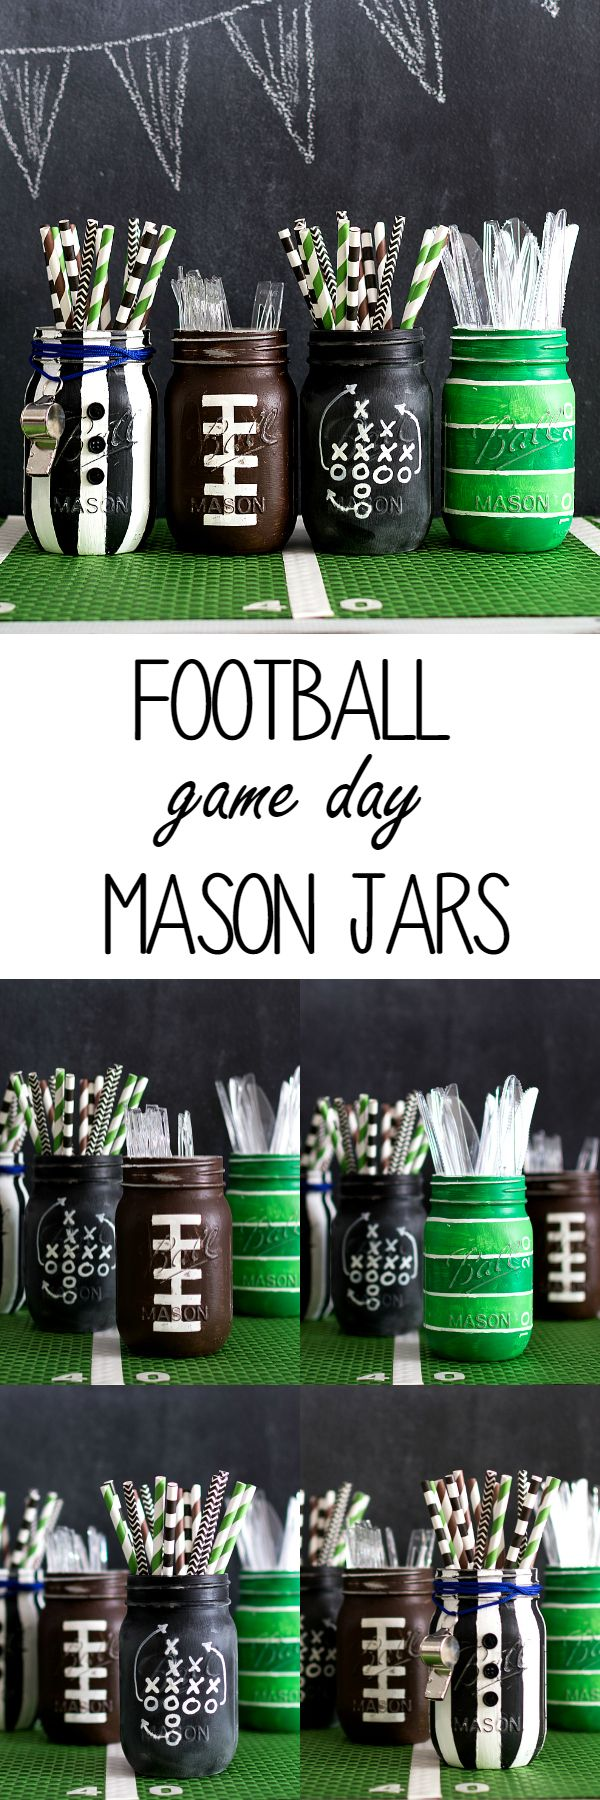 asics runners sale australia Football Party   Super Bowl Party   Game Day Mason Jars   Mason Jar Craft Idea  Mason Jar Crafts Love